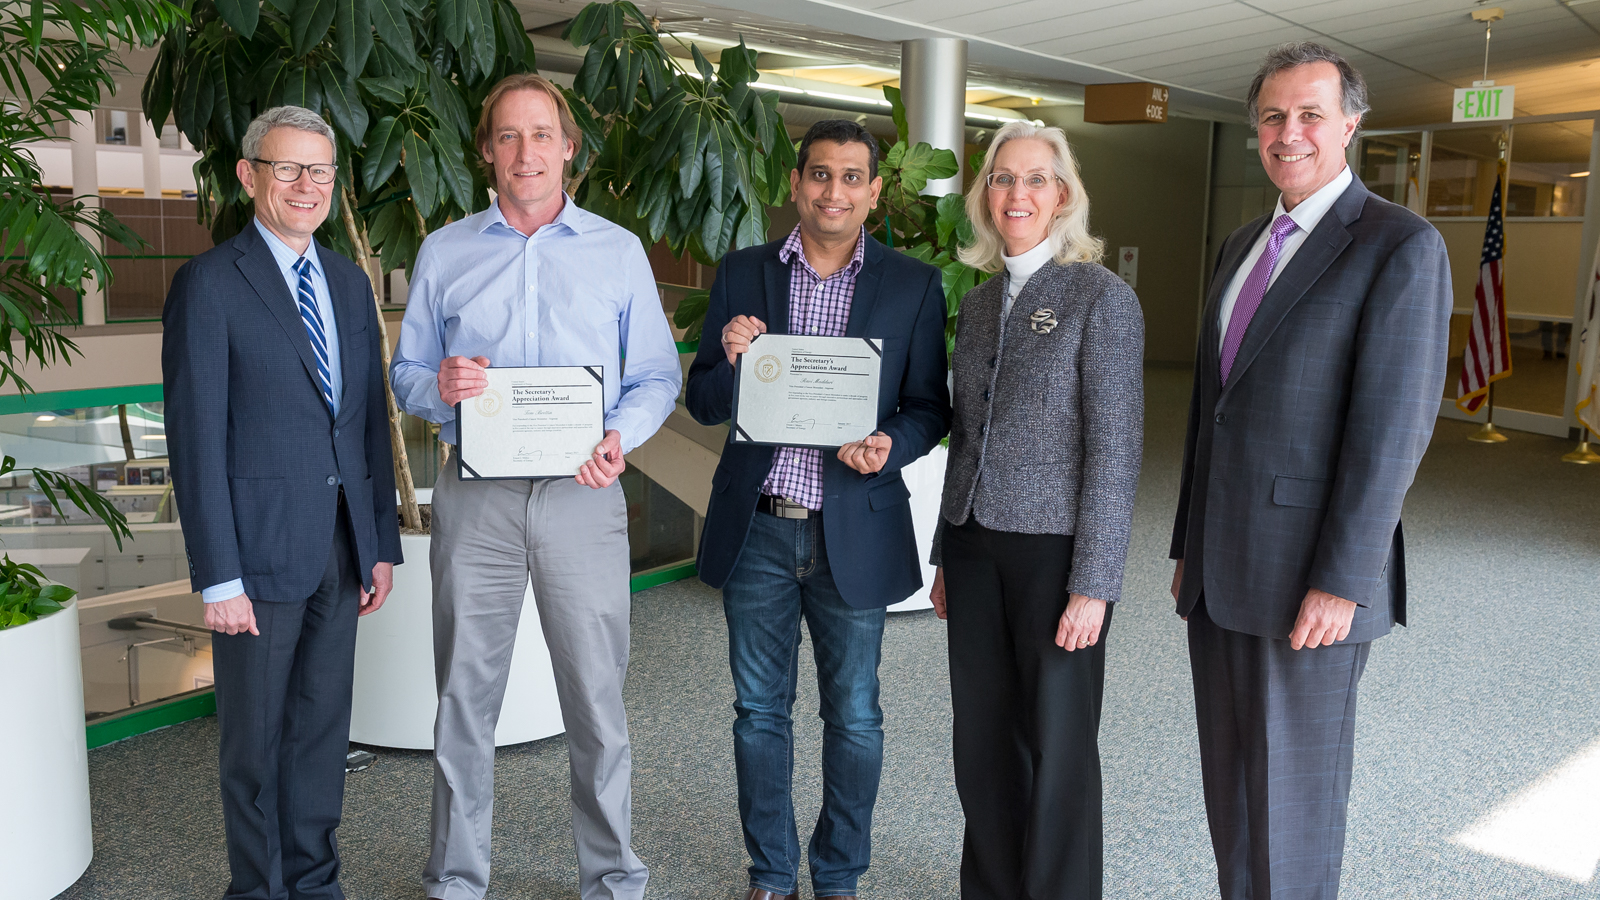 Argonne Computer Scientists Tom Brettin and Ravi Madduri also received awards for their work with the Cancer Moonshot Task Force.